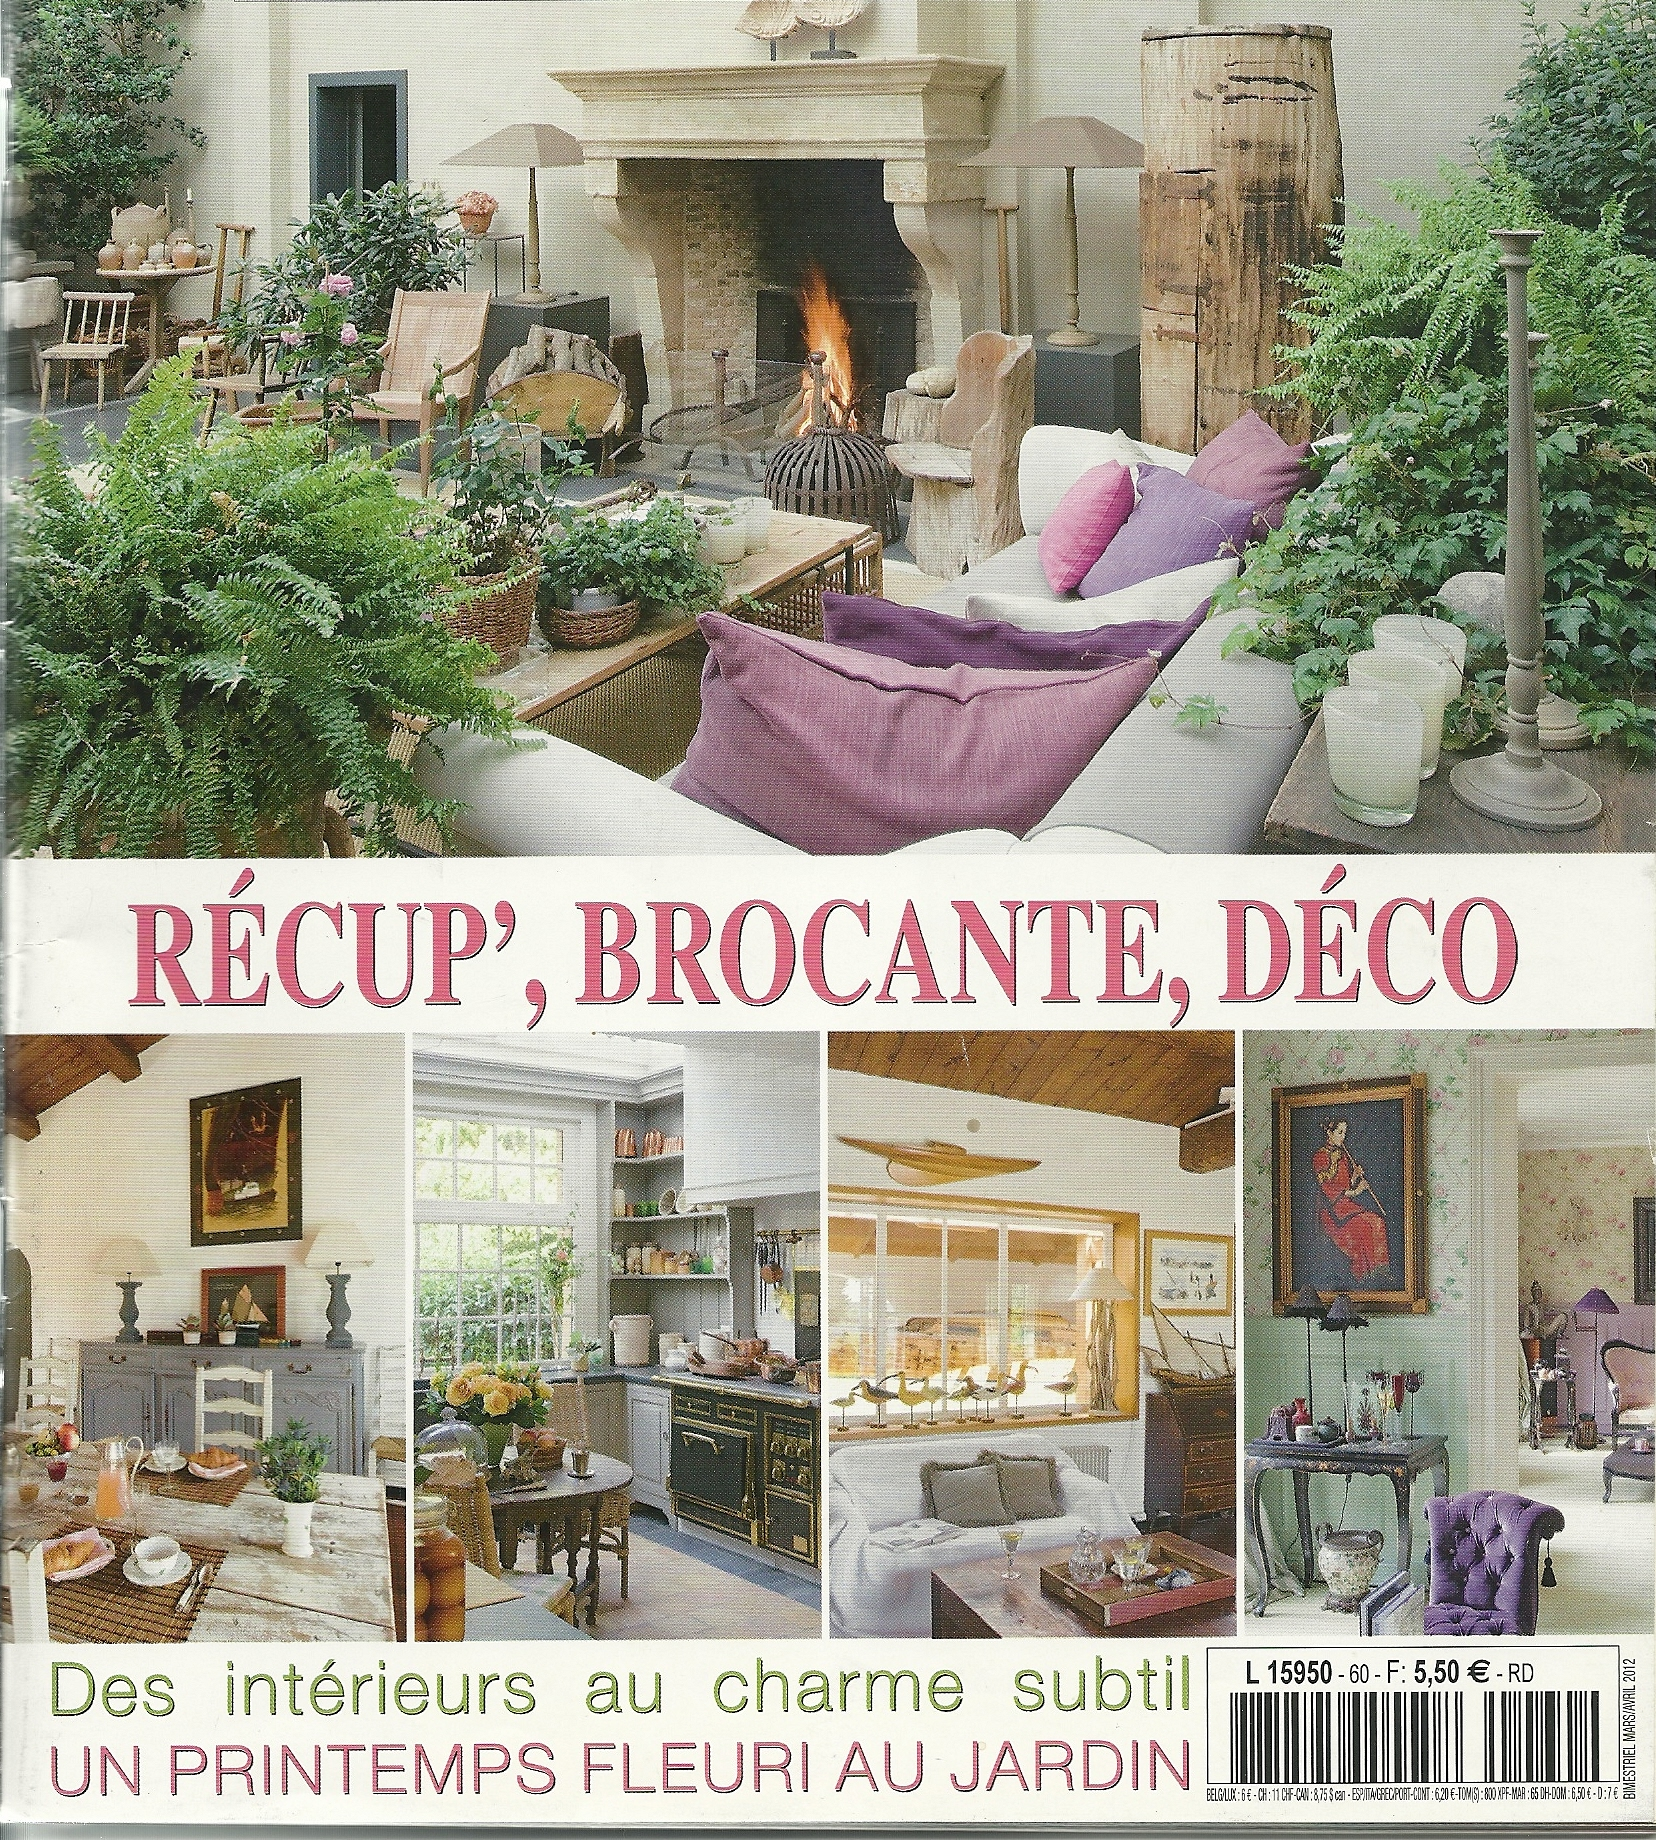 Idee Decoration Maison Firstplacesafety Magazine Decoration Maison Jardin Idées